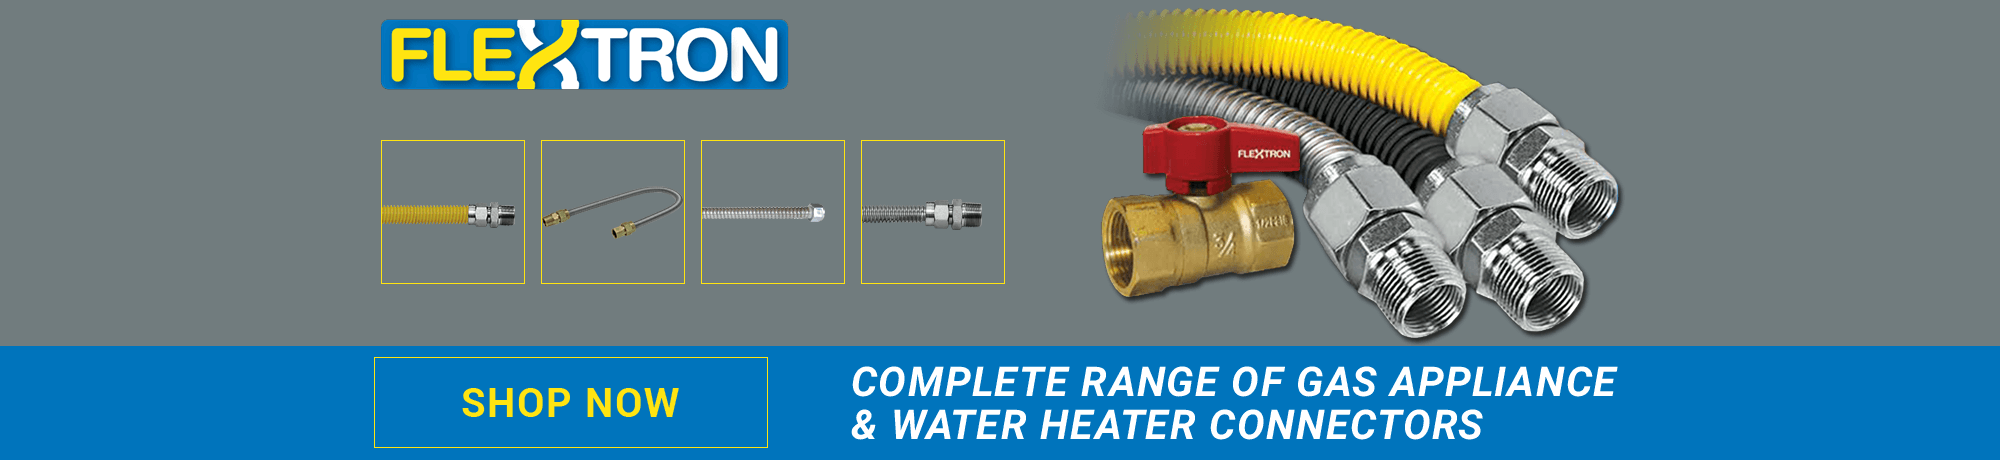 Complete range of Gas Appliance & Water Heater Connectors . SHOP NOW